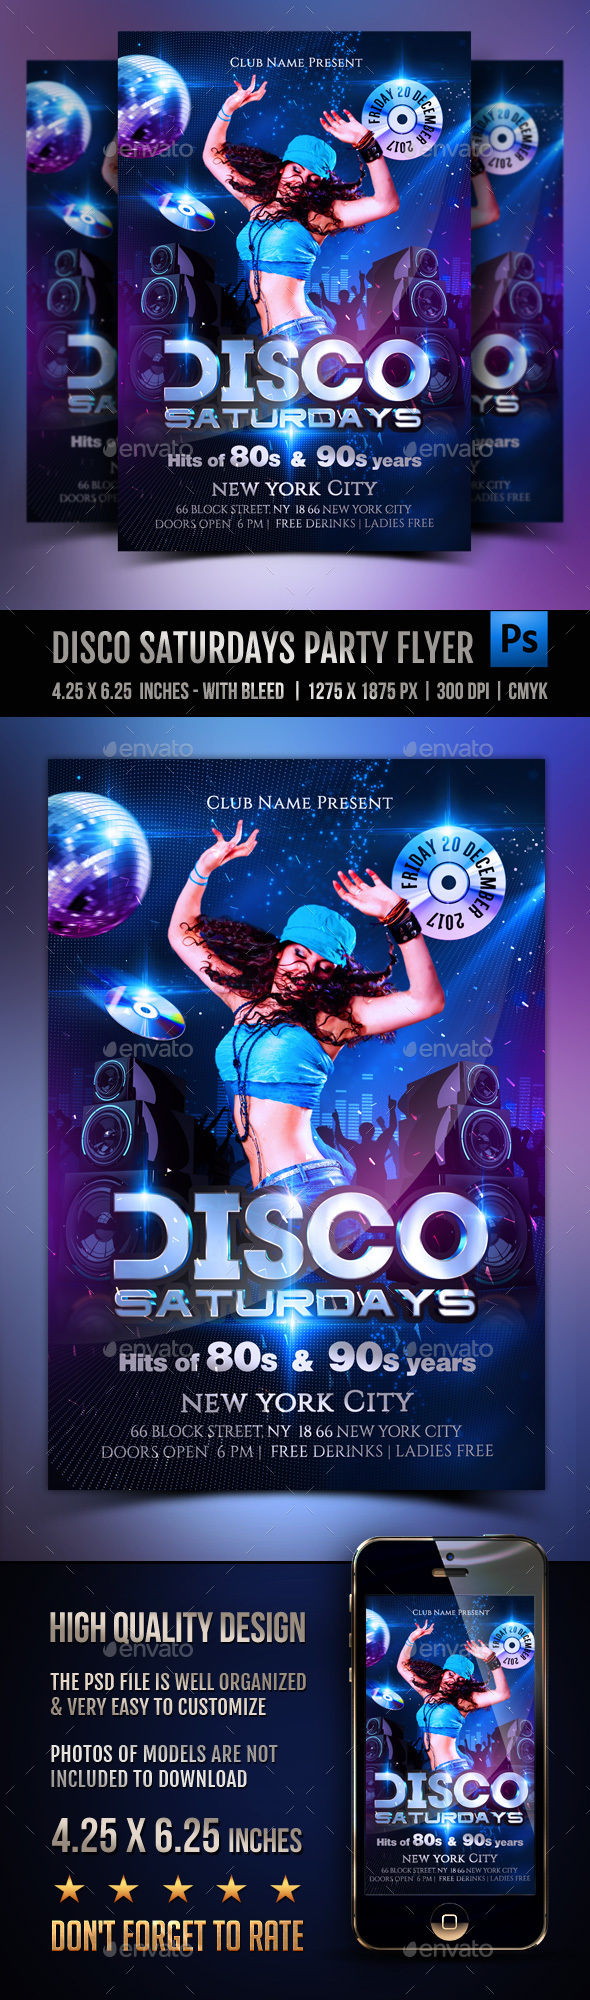 Disco Saturdays Party Flyer - Clubs & Parties Events